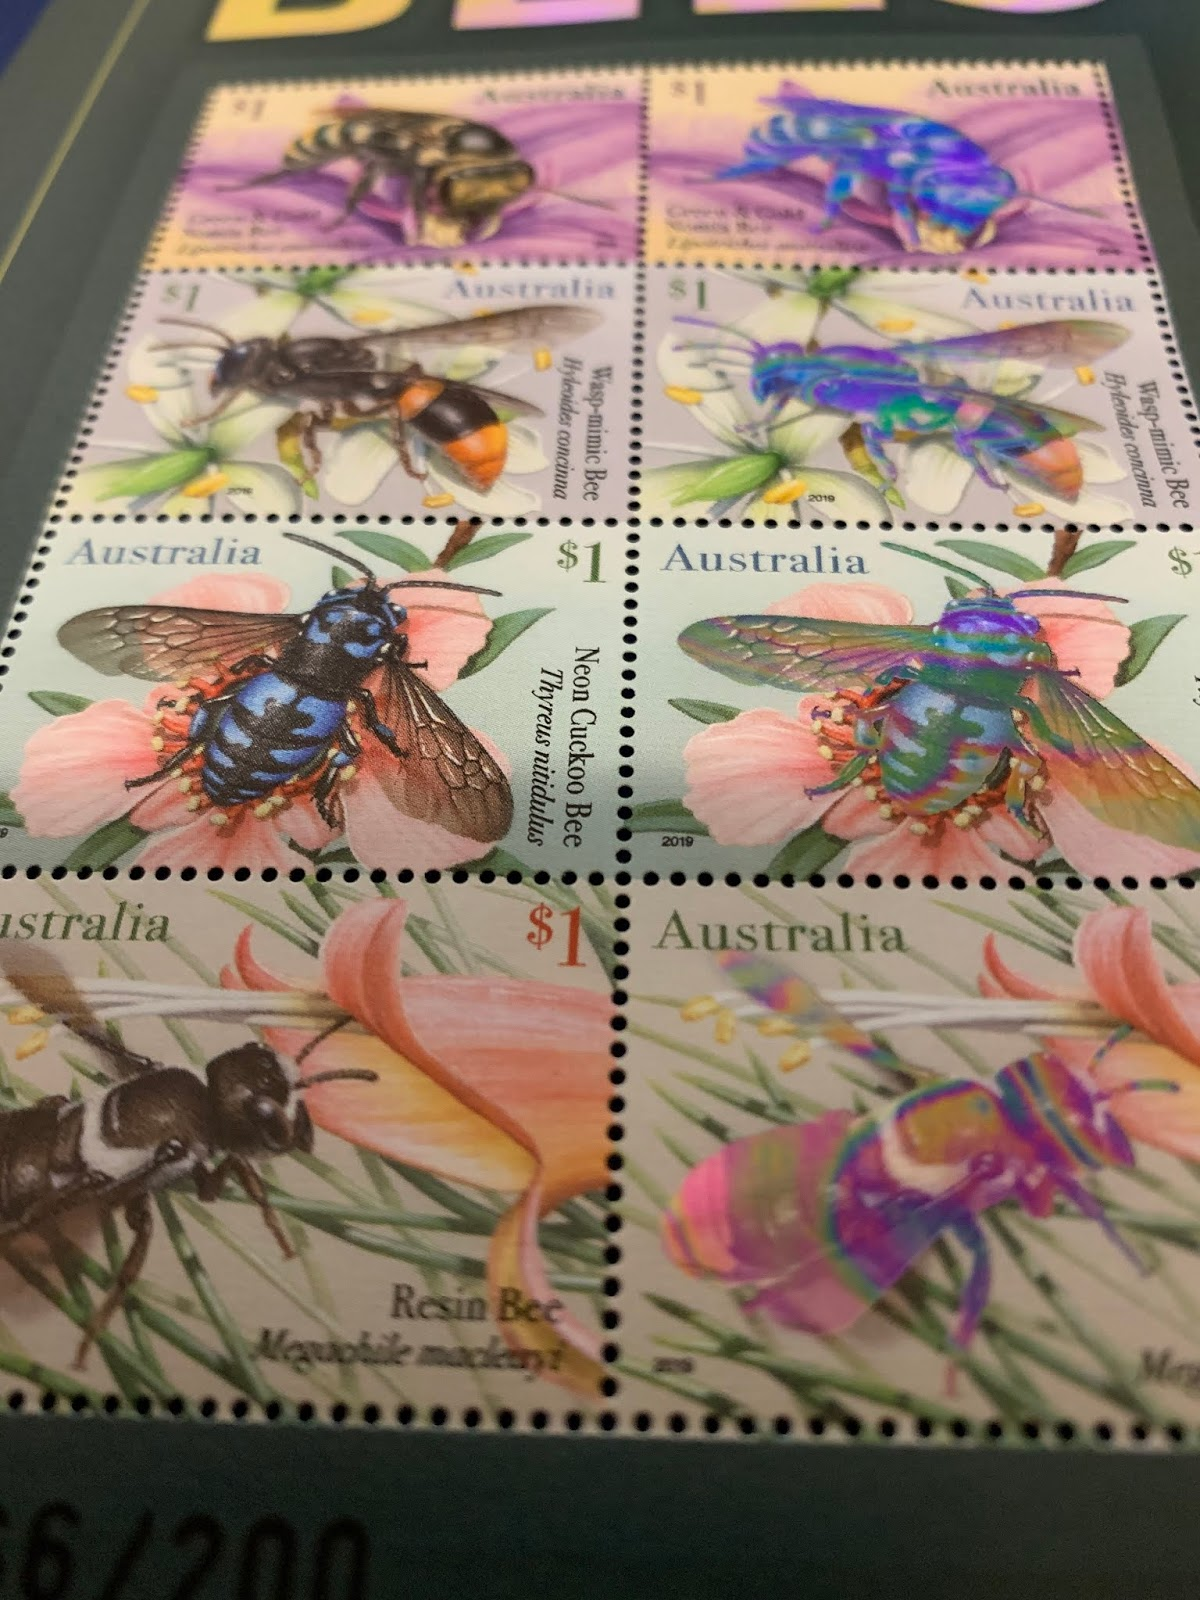 2019 Native Bees postal numismatic cover